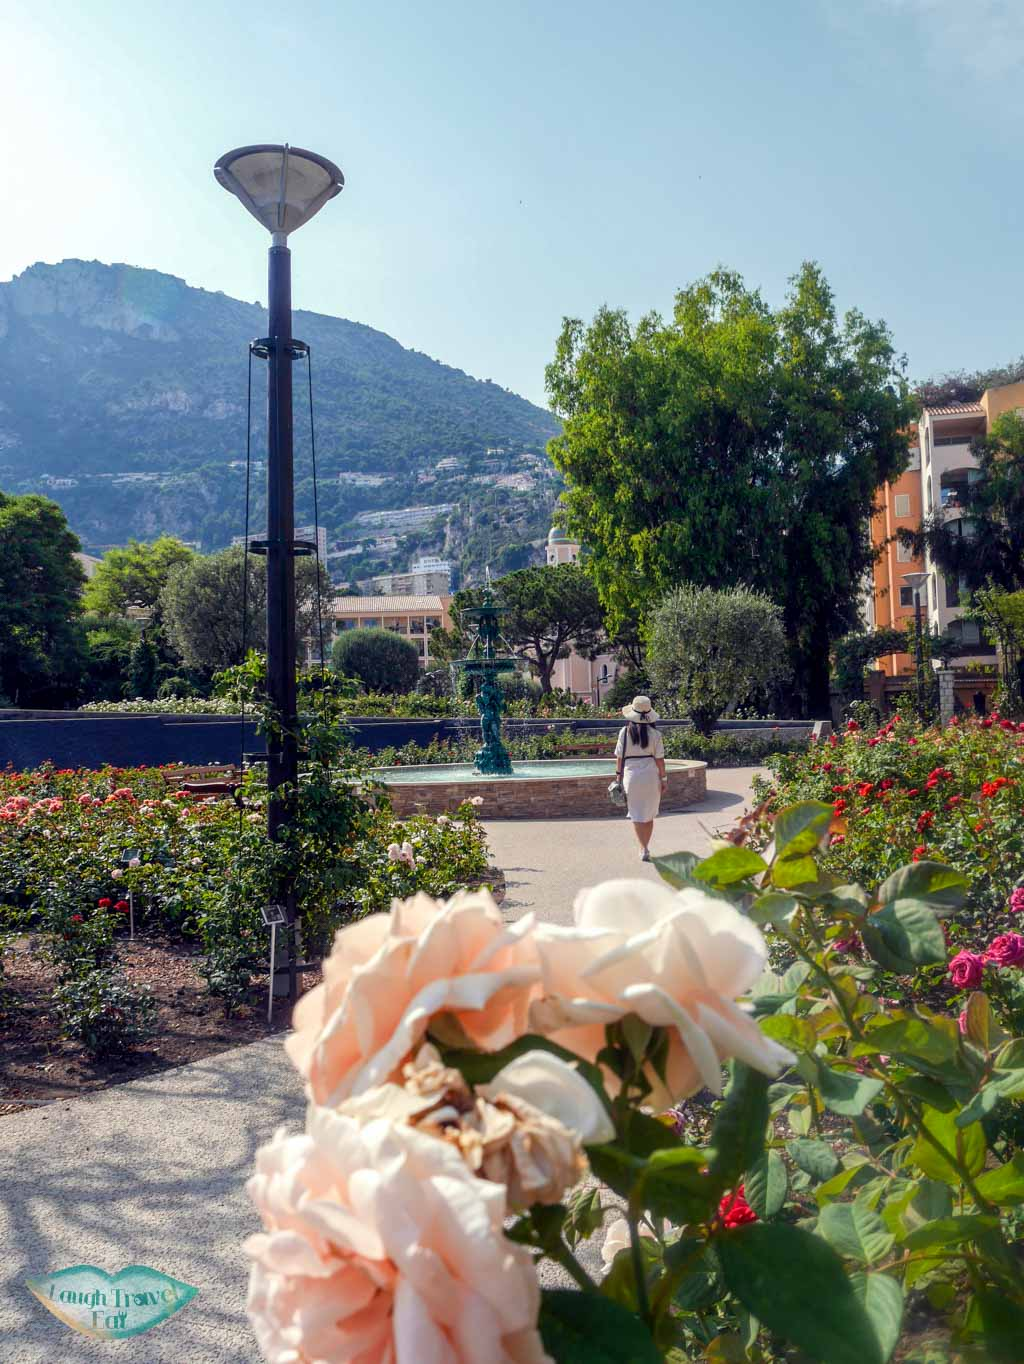 princess grace rose garden monaco | Laugh Travel Eat